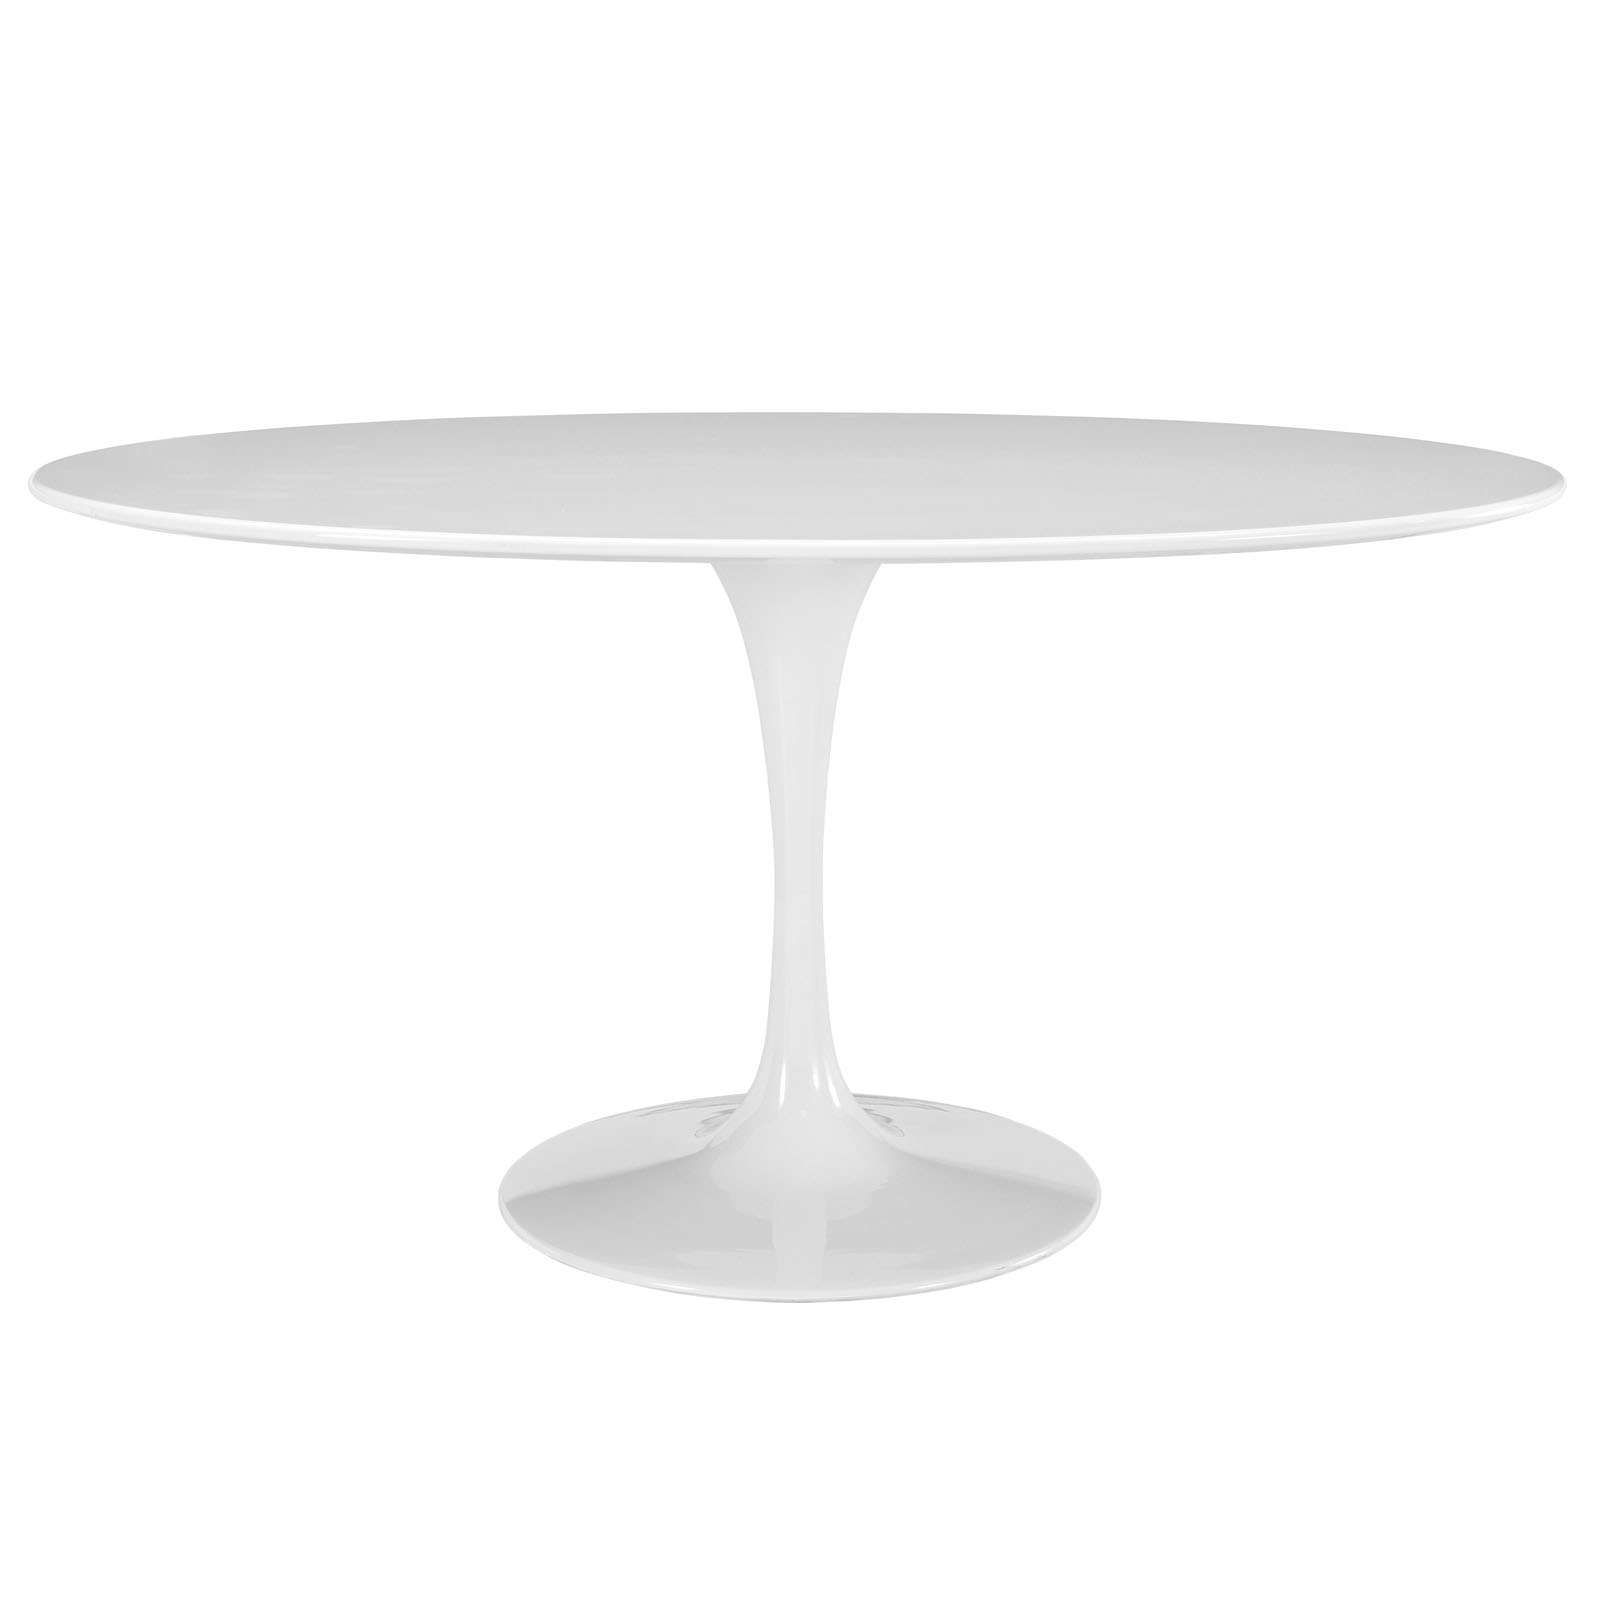 Modway Lippa White 60 Quot Oval Shaped Wood Top Dining Table